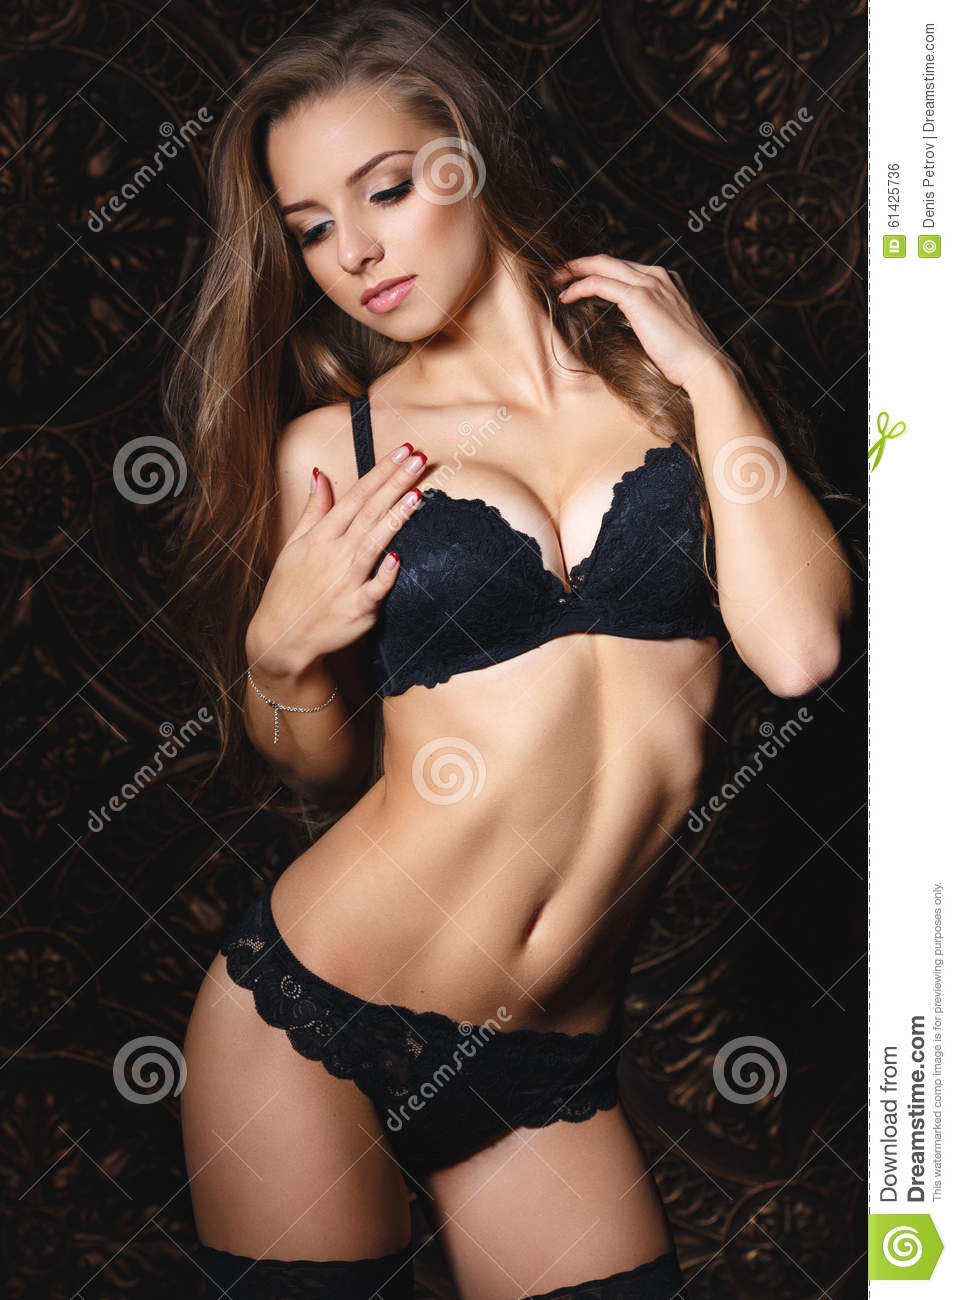 Fille Sexy Lingerie beautiful girl in a black lingerie stock photo - image of portrait